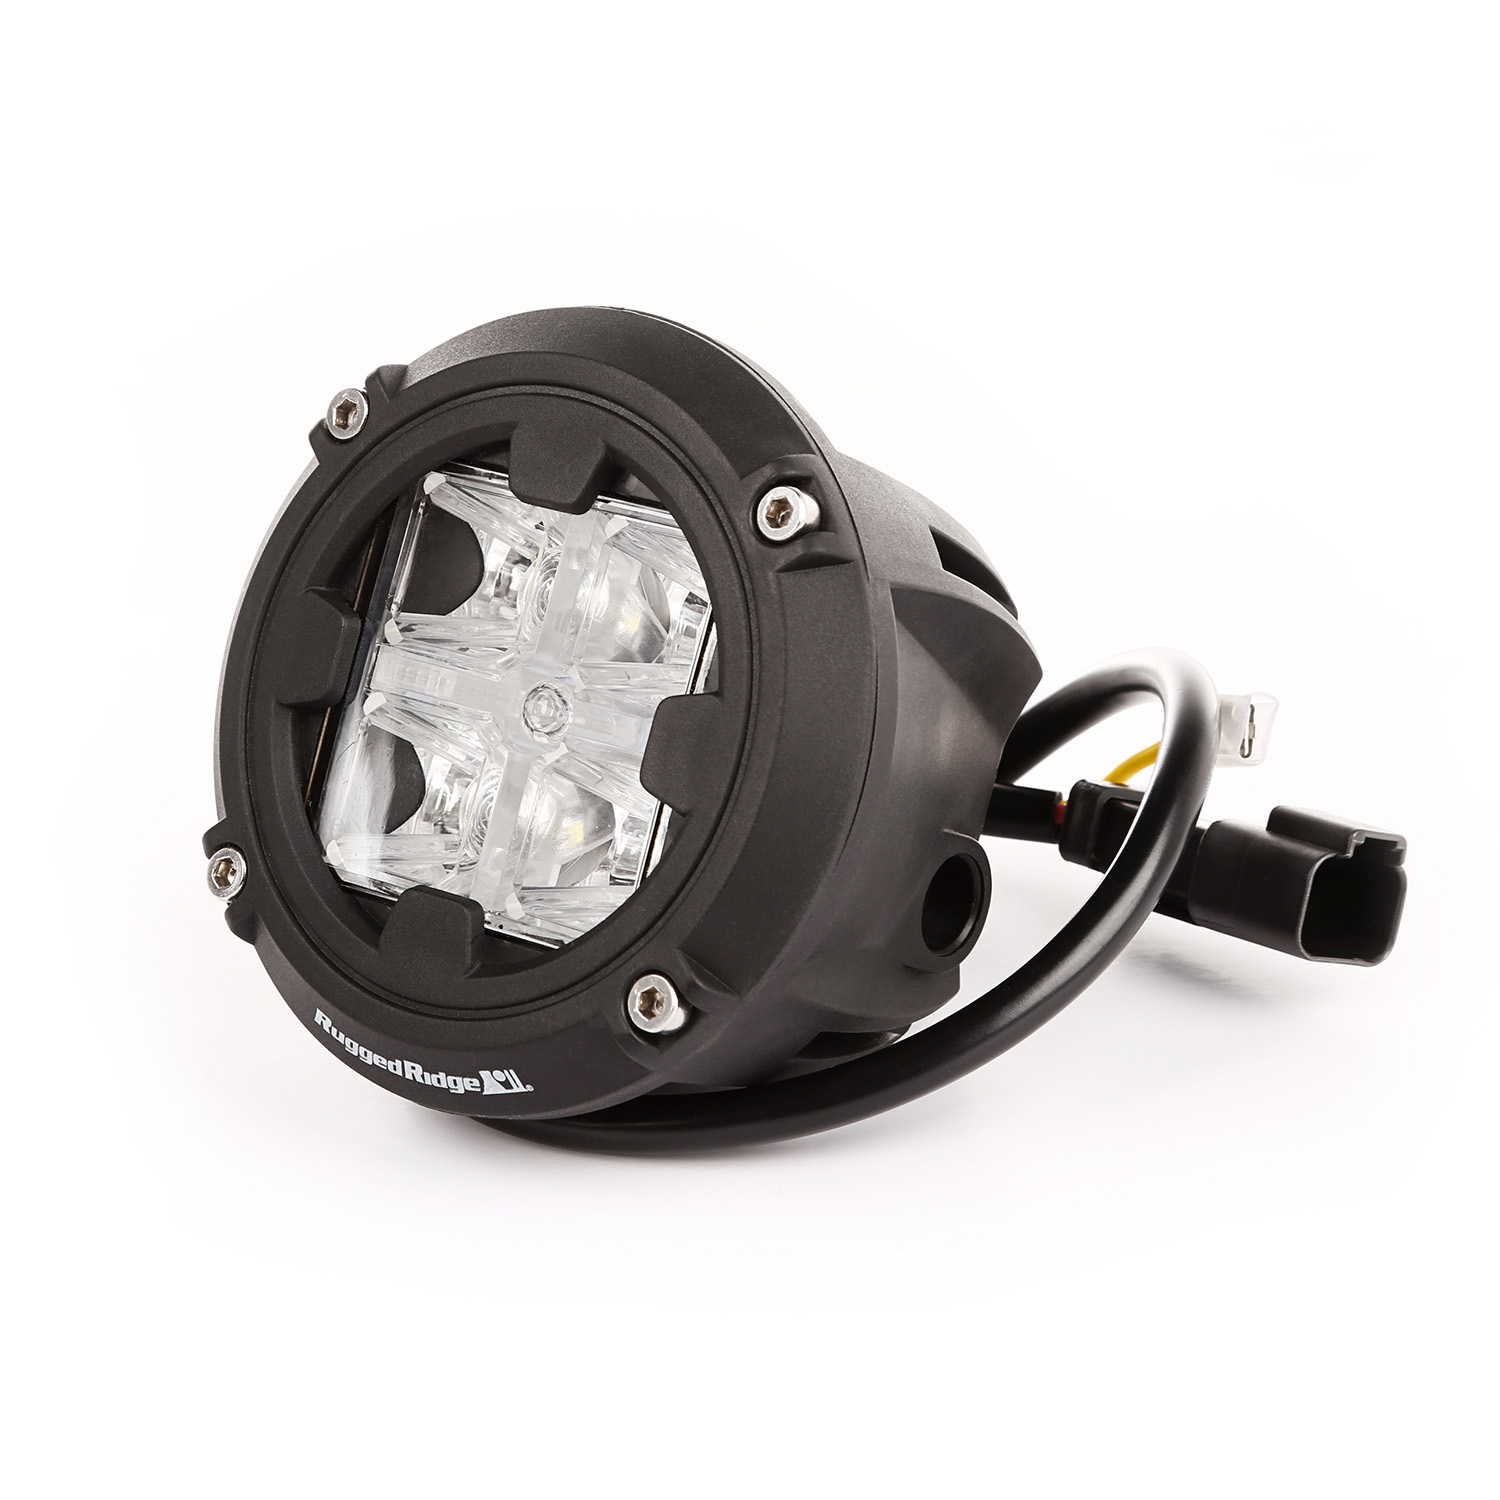 Rugged Ridge Round LED Light 3.5 inches, Combo High/Low Beam